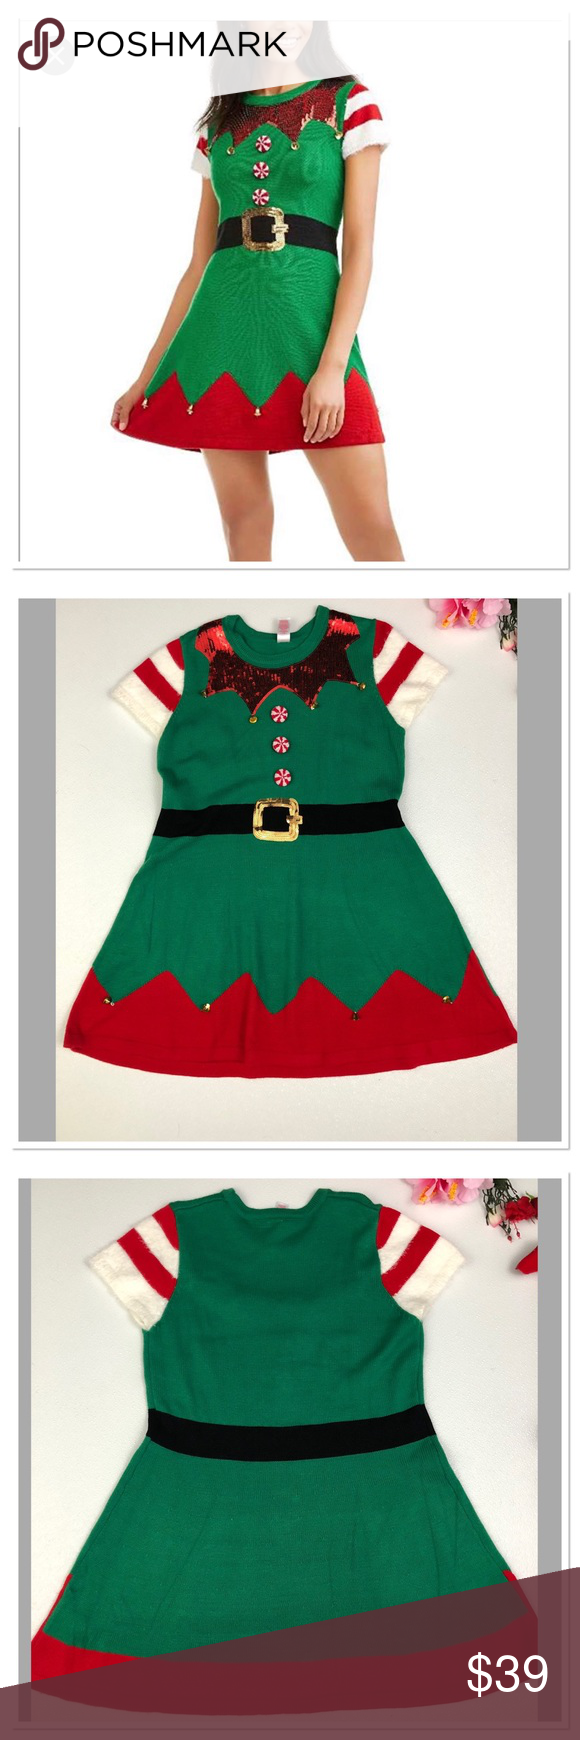 9785e98c8eabd Holiday Time Not Ugly Christmas Elf Sweater Dress Holiday Time Not Ugly  Christmas Elf Sweater Tunic/Dress Red and Green Embellished With Sequins,  ...